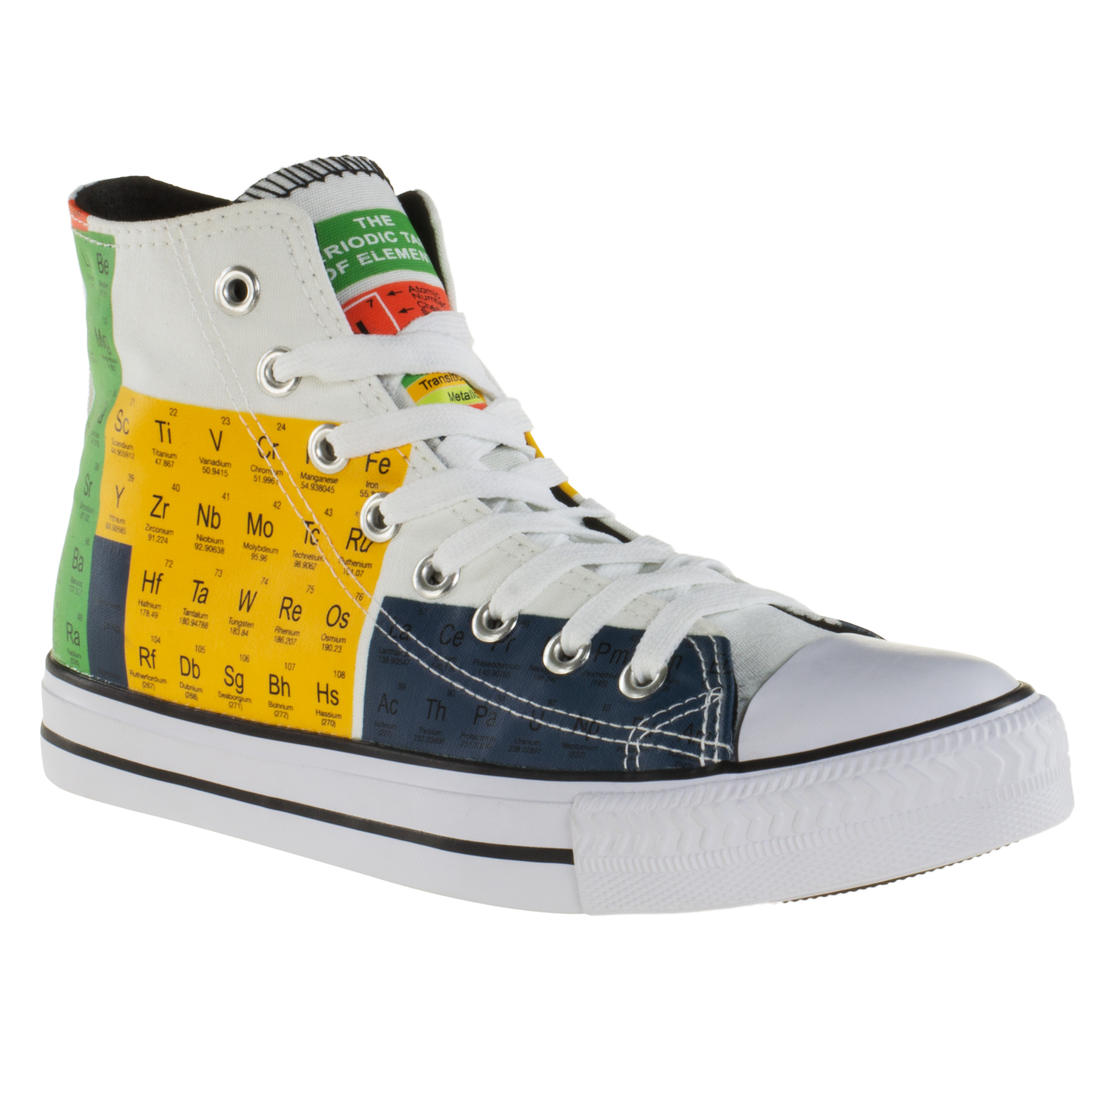 Periodic table shoes getdigital gamestrikefo Choice Image